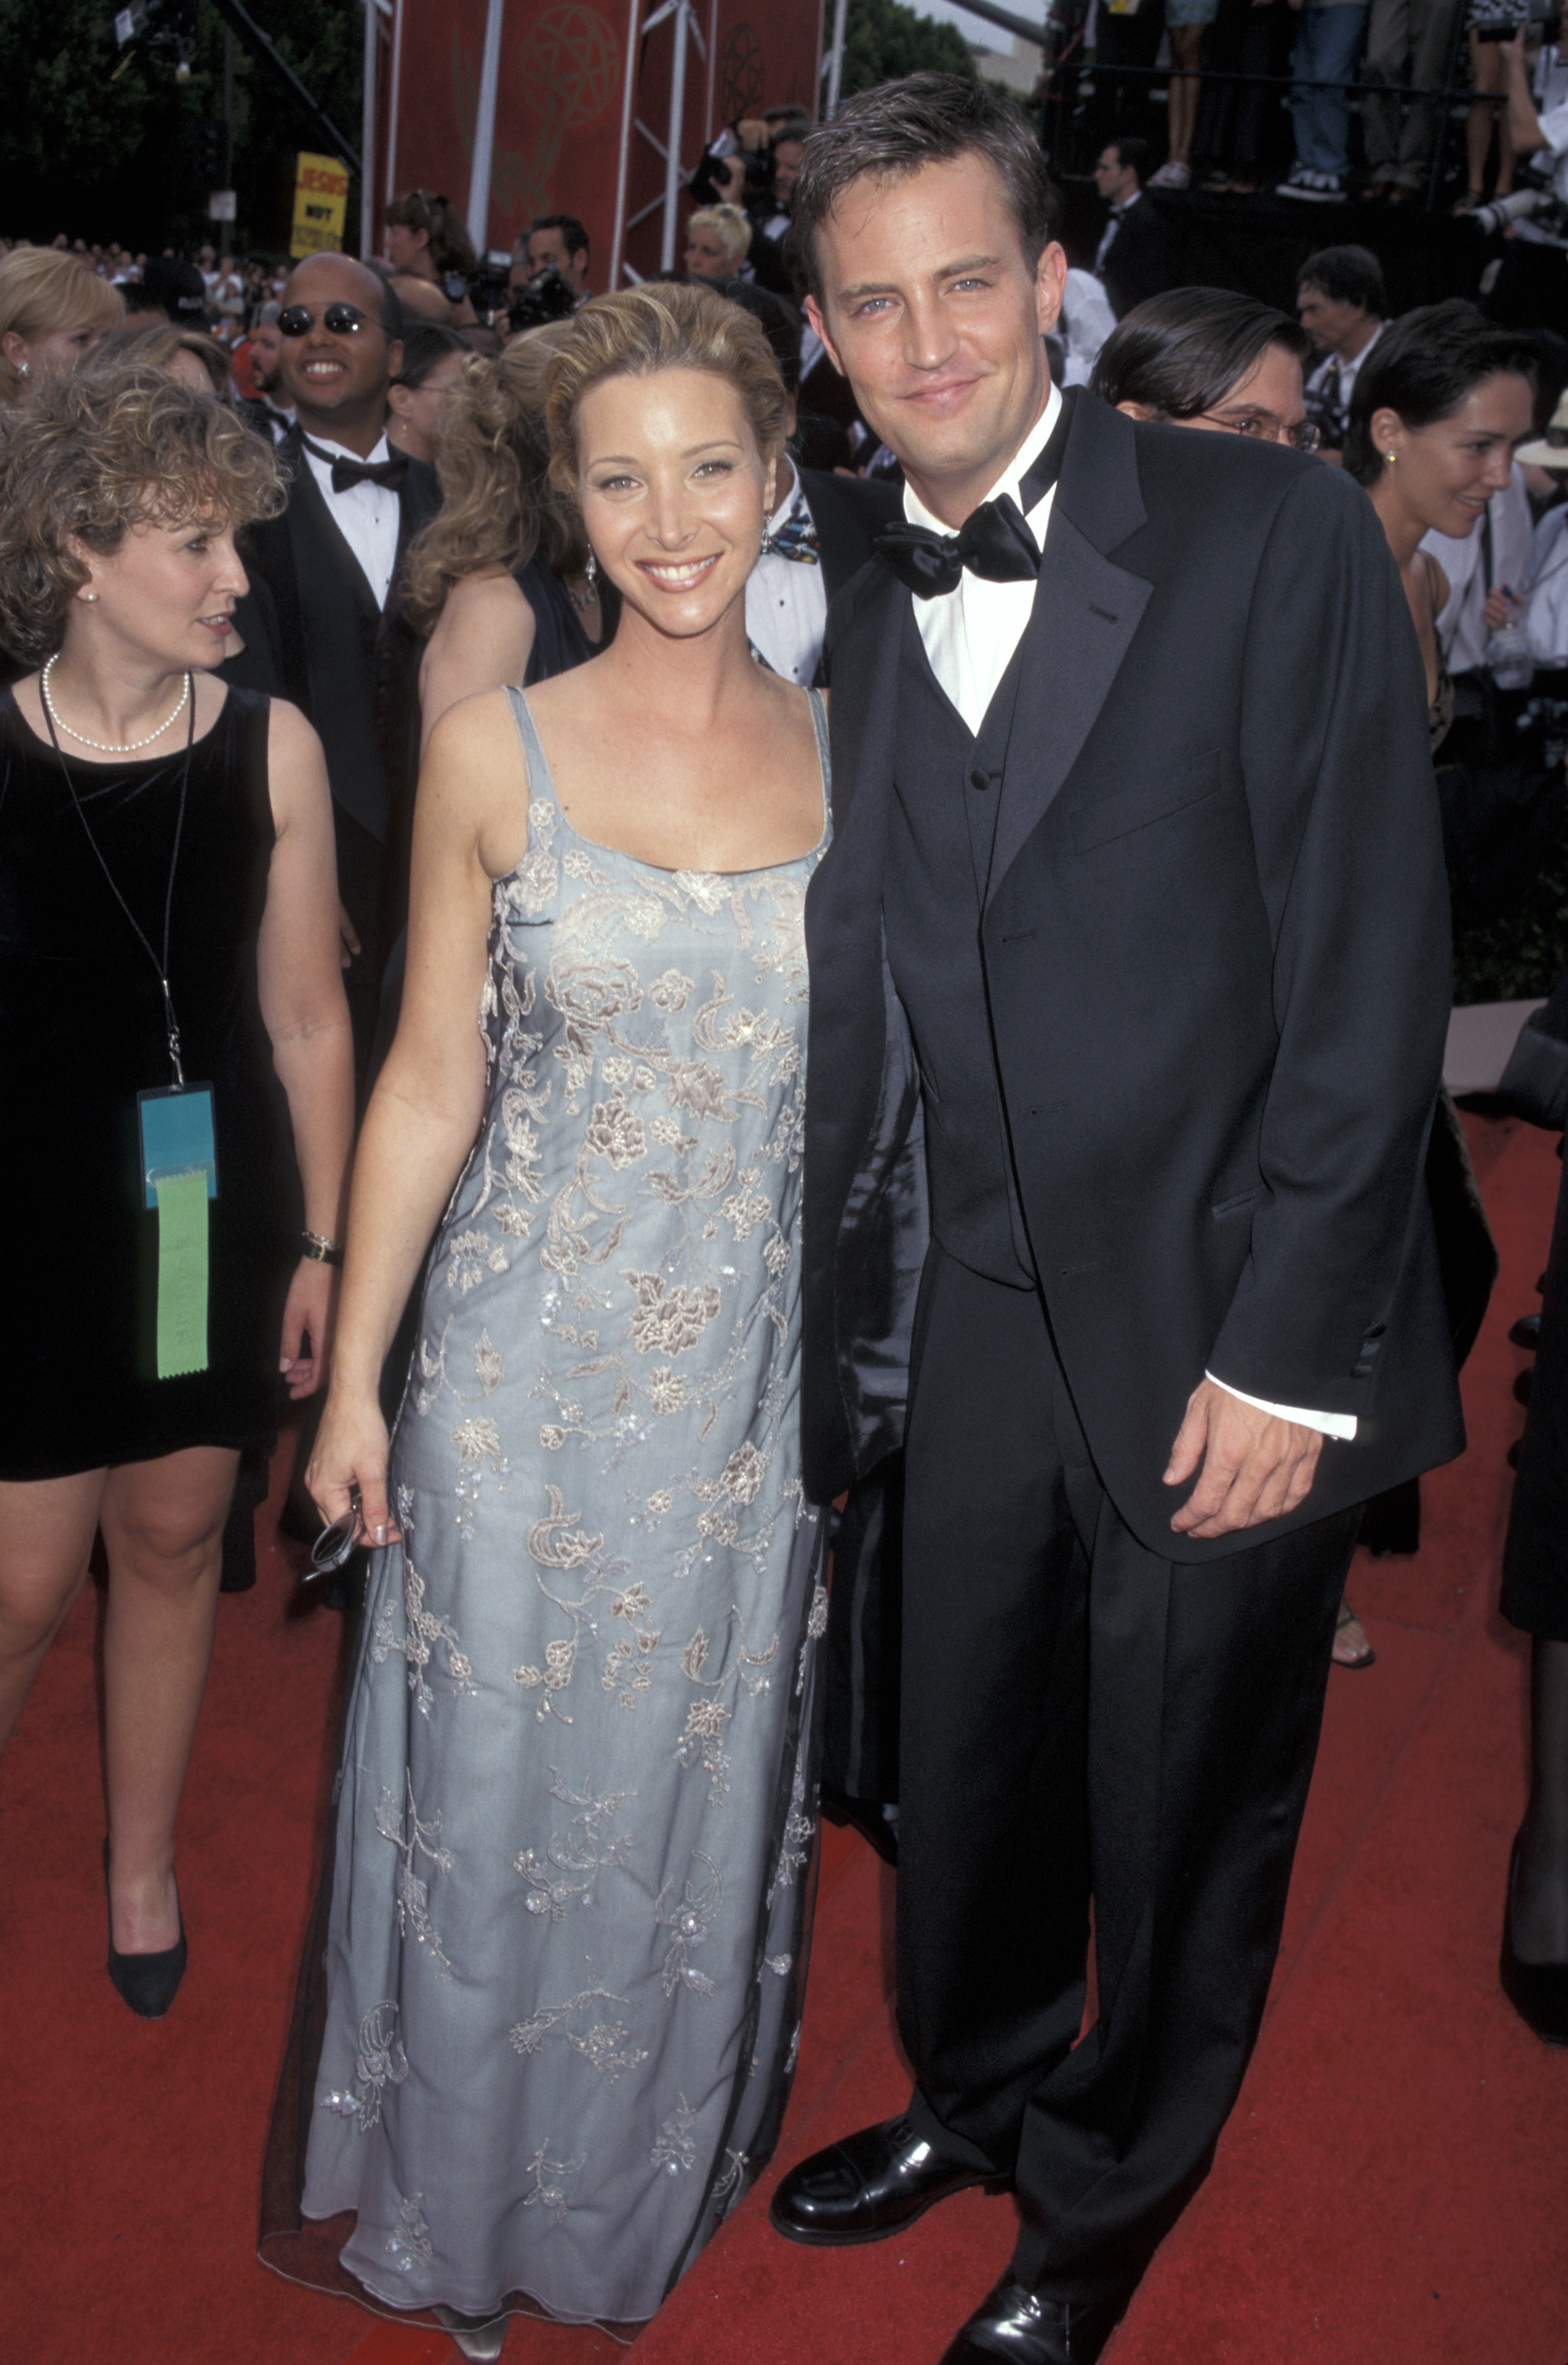 Lisa Kudrow and Matthew Perry arrive at the 49th Annual Primetime Emmy Awards at the Pasadena Civic Auditorium in Pasadena, California, on Sept. 14, 1997.